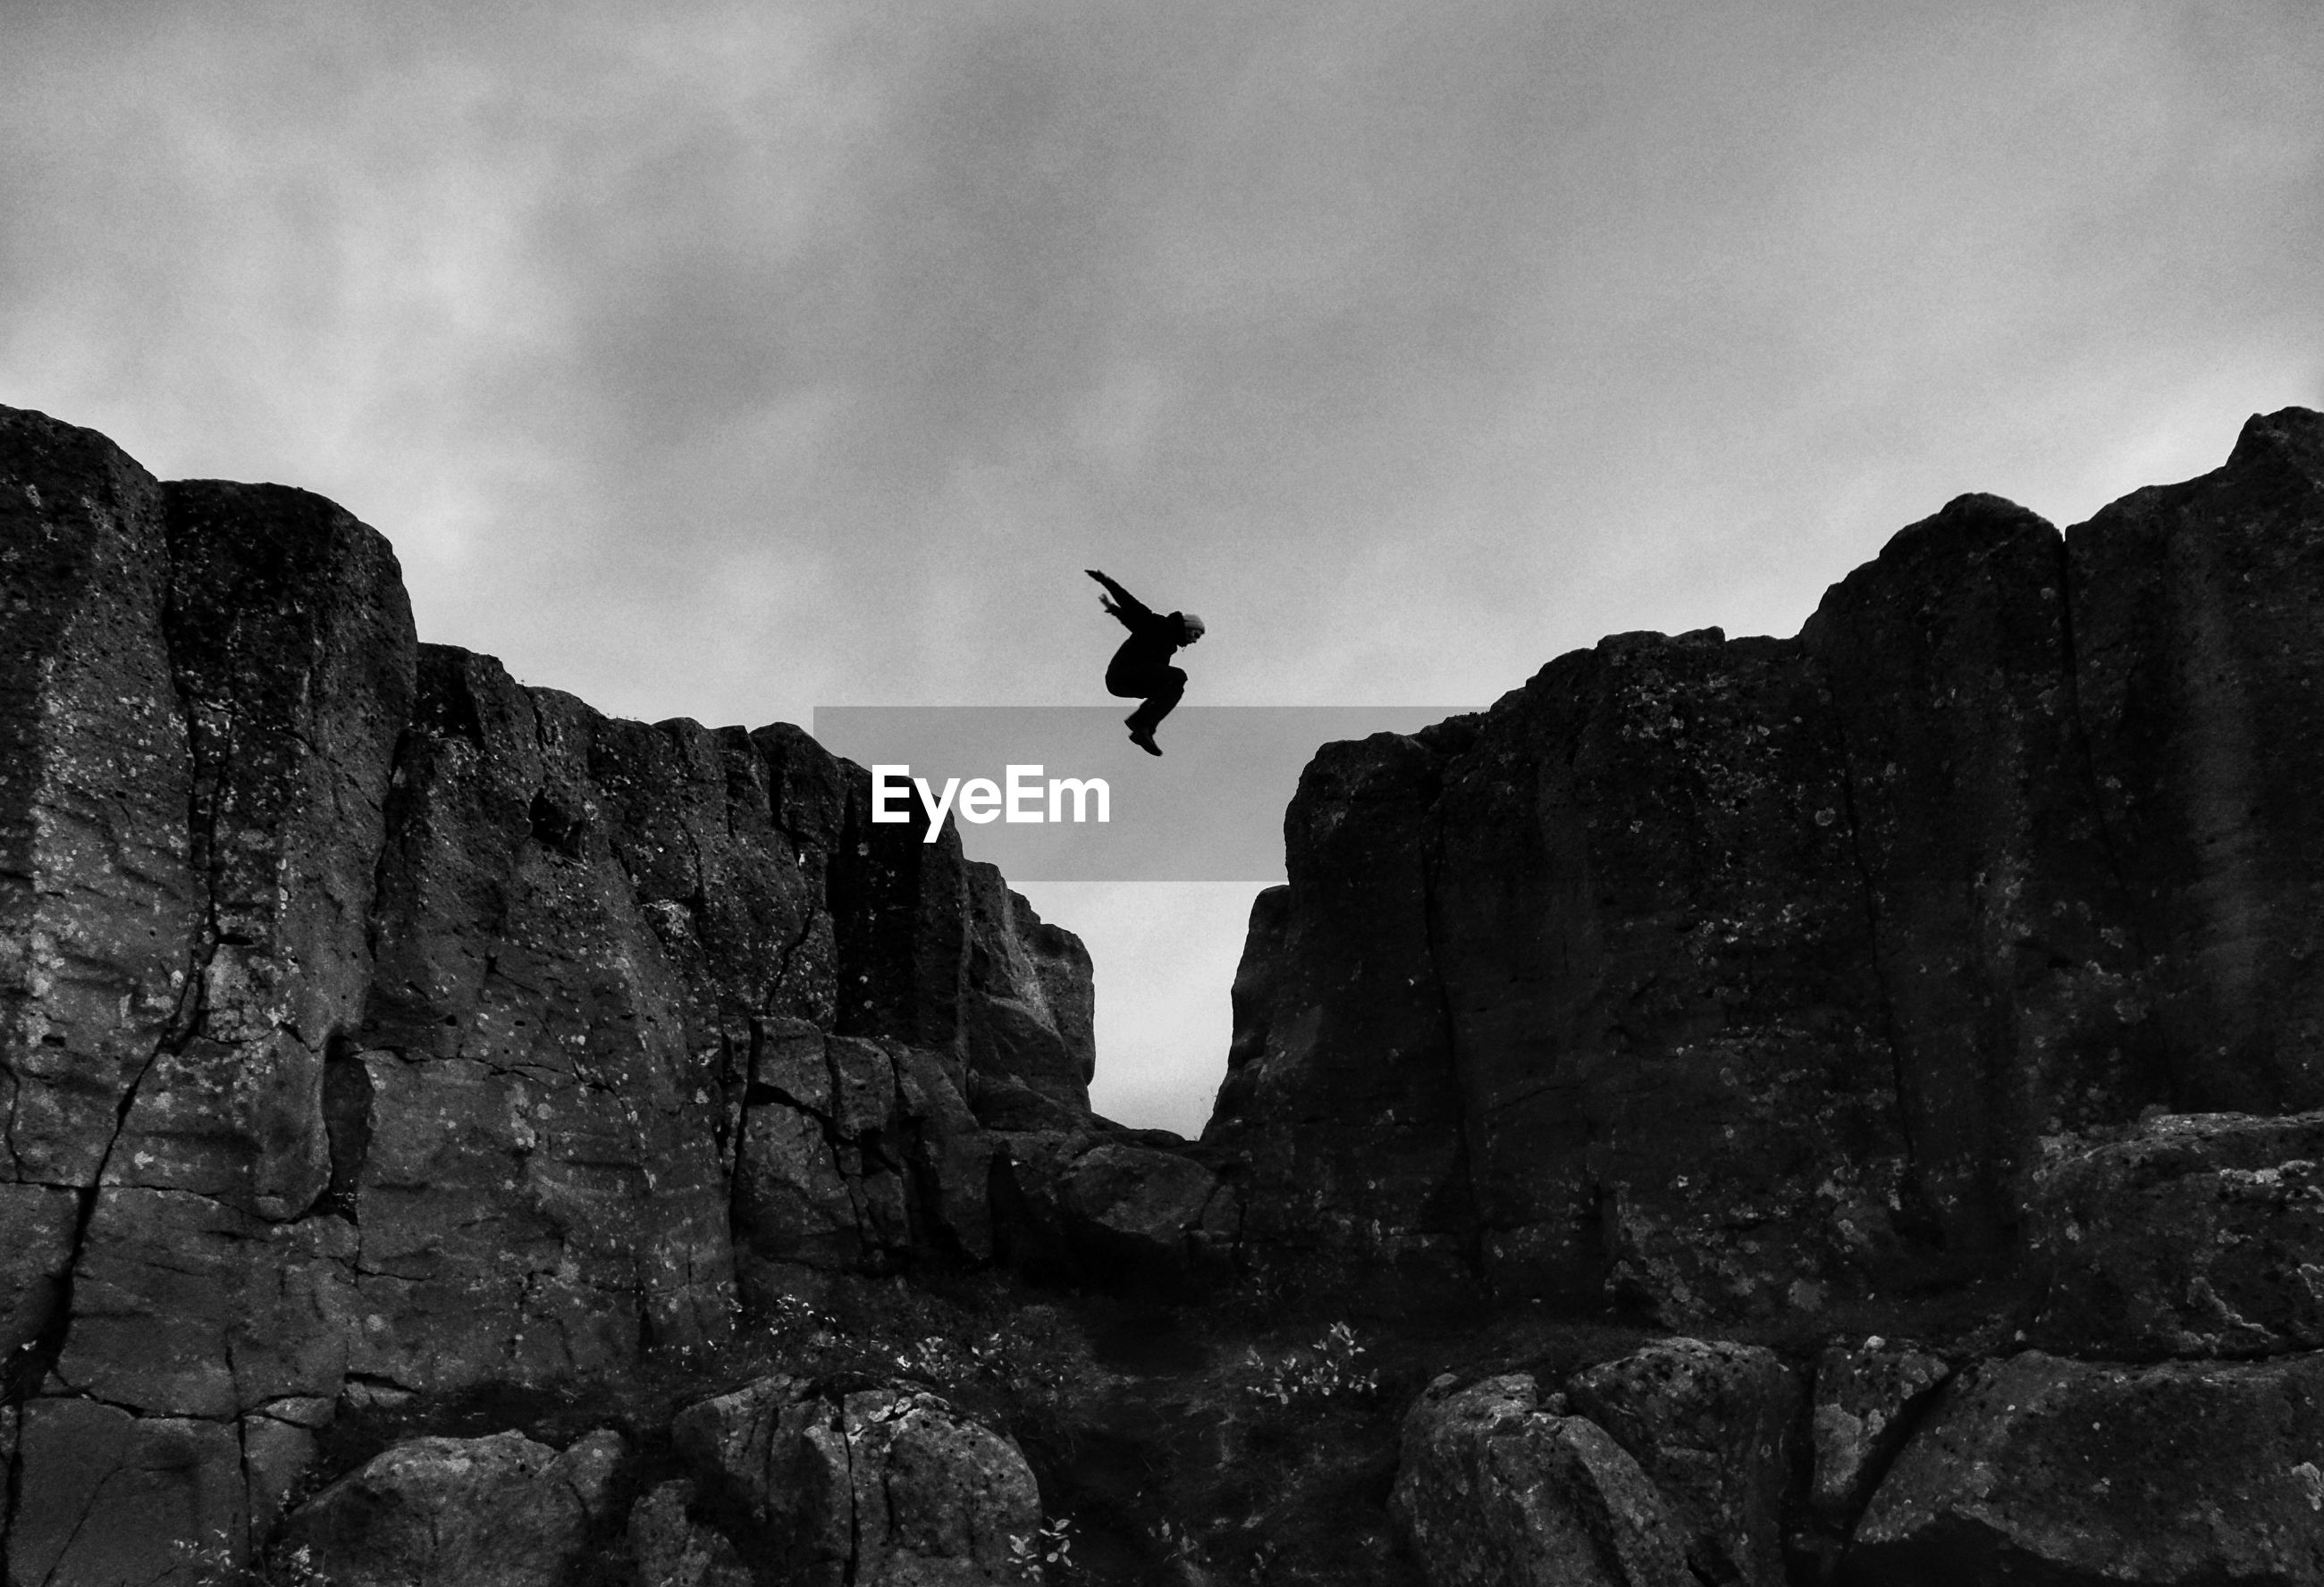 Low angle view of silhouette man jumping over rocks